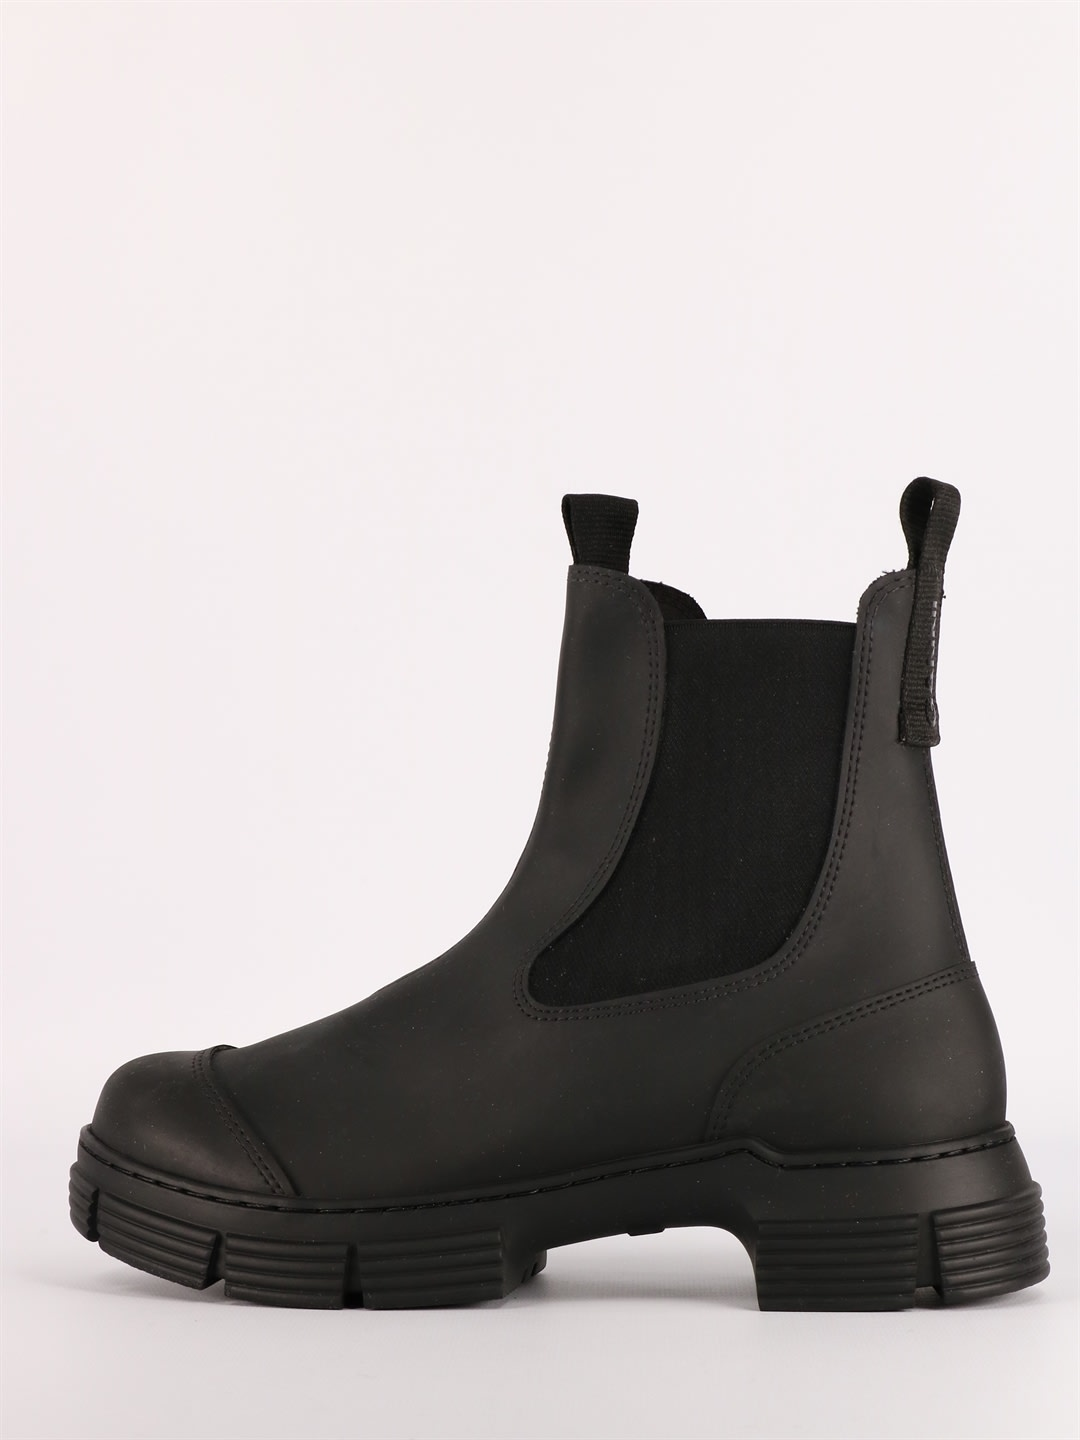 Ganni BLACK RECYCLED RUBBER BOOTS